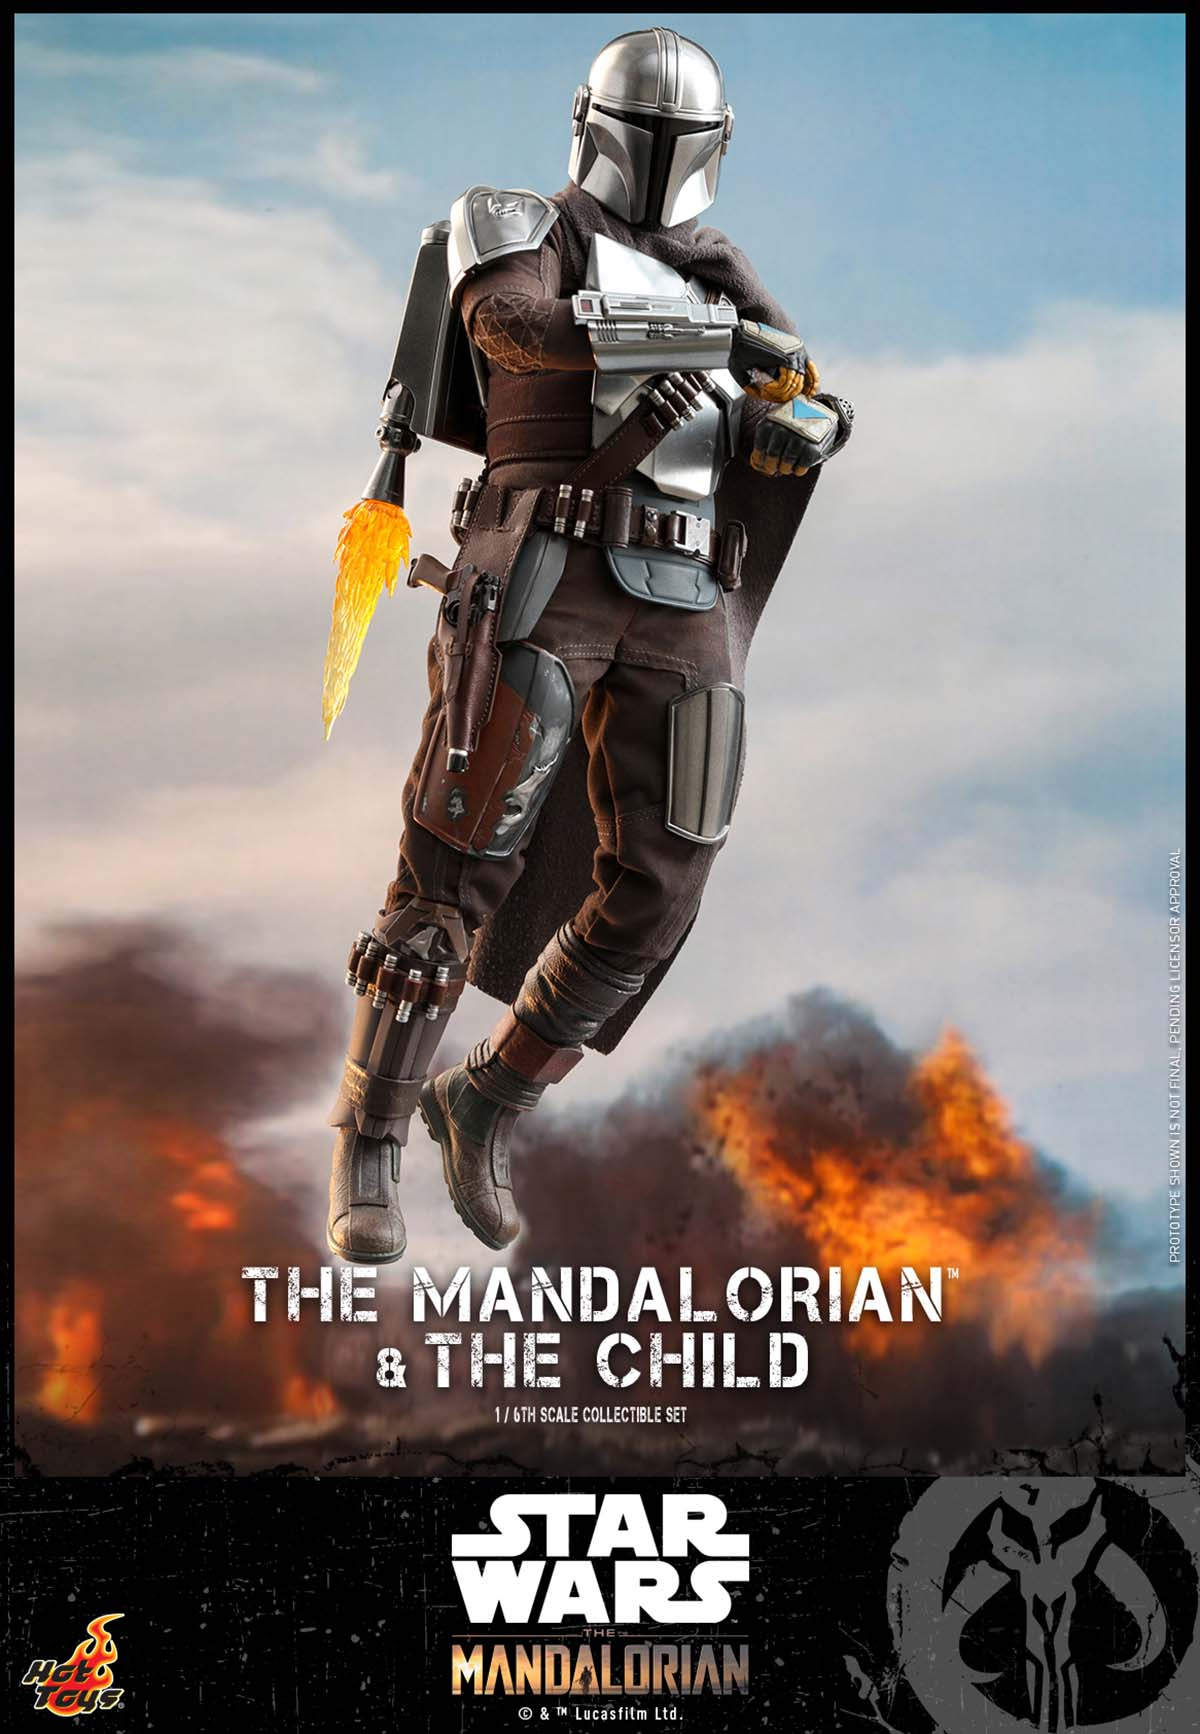 hot-toys-stm-mandalorian-and-child-collectible-set_pr4